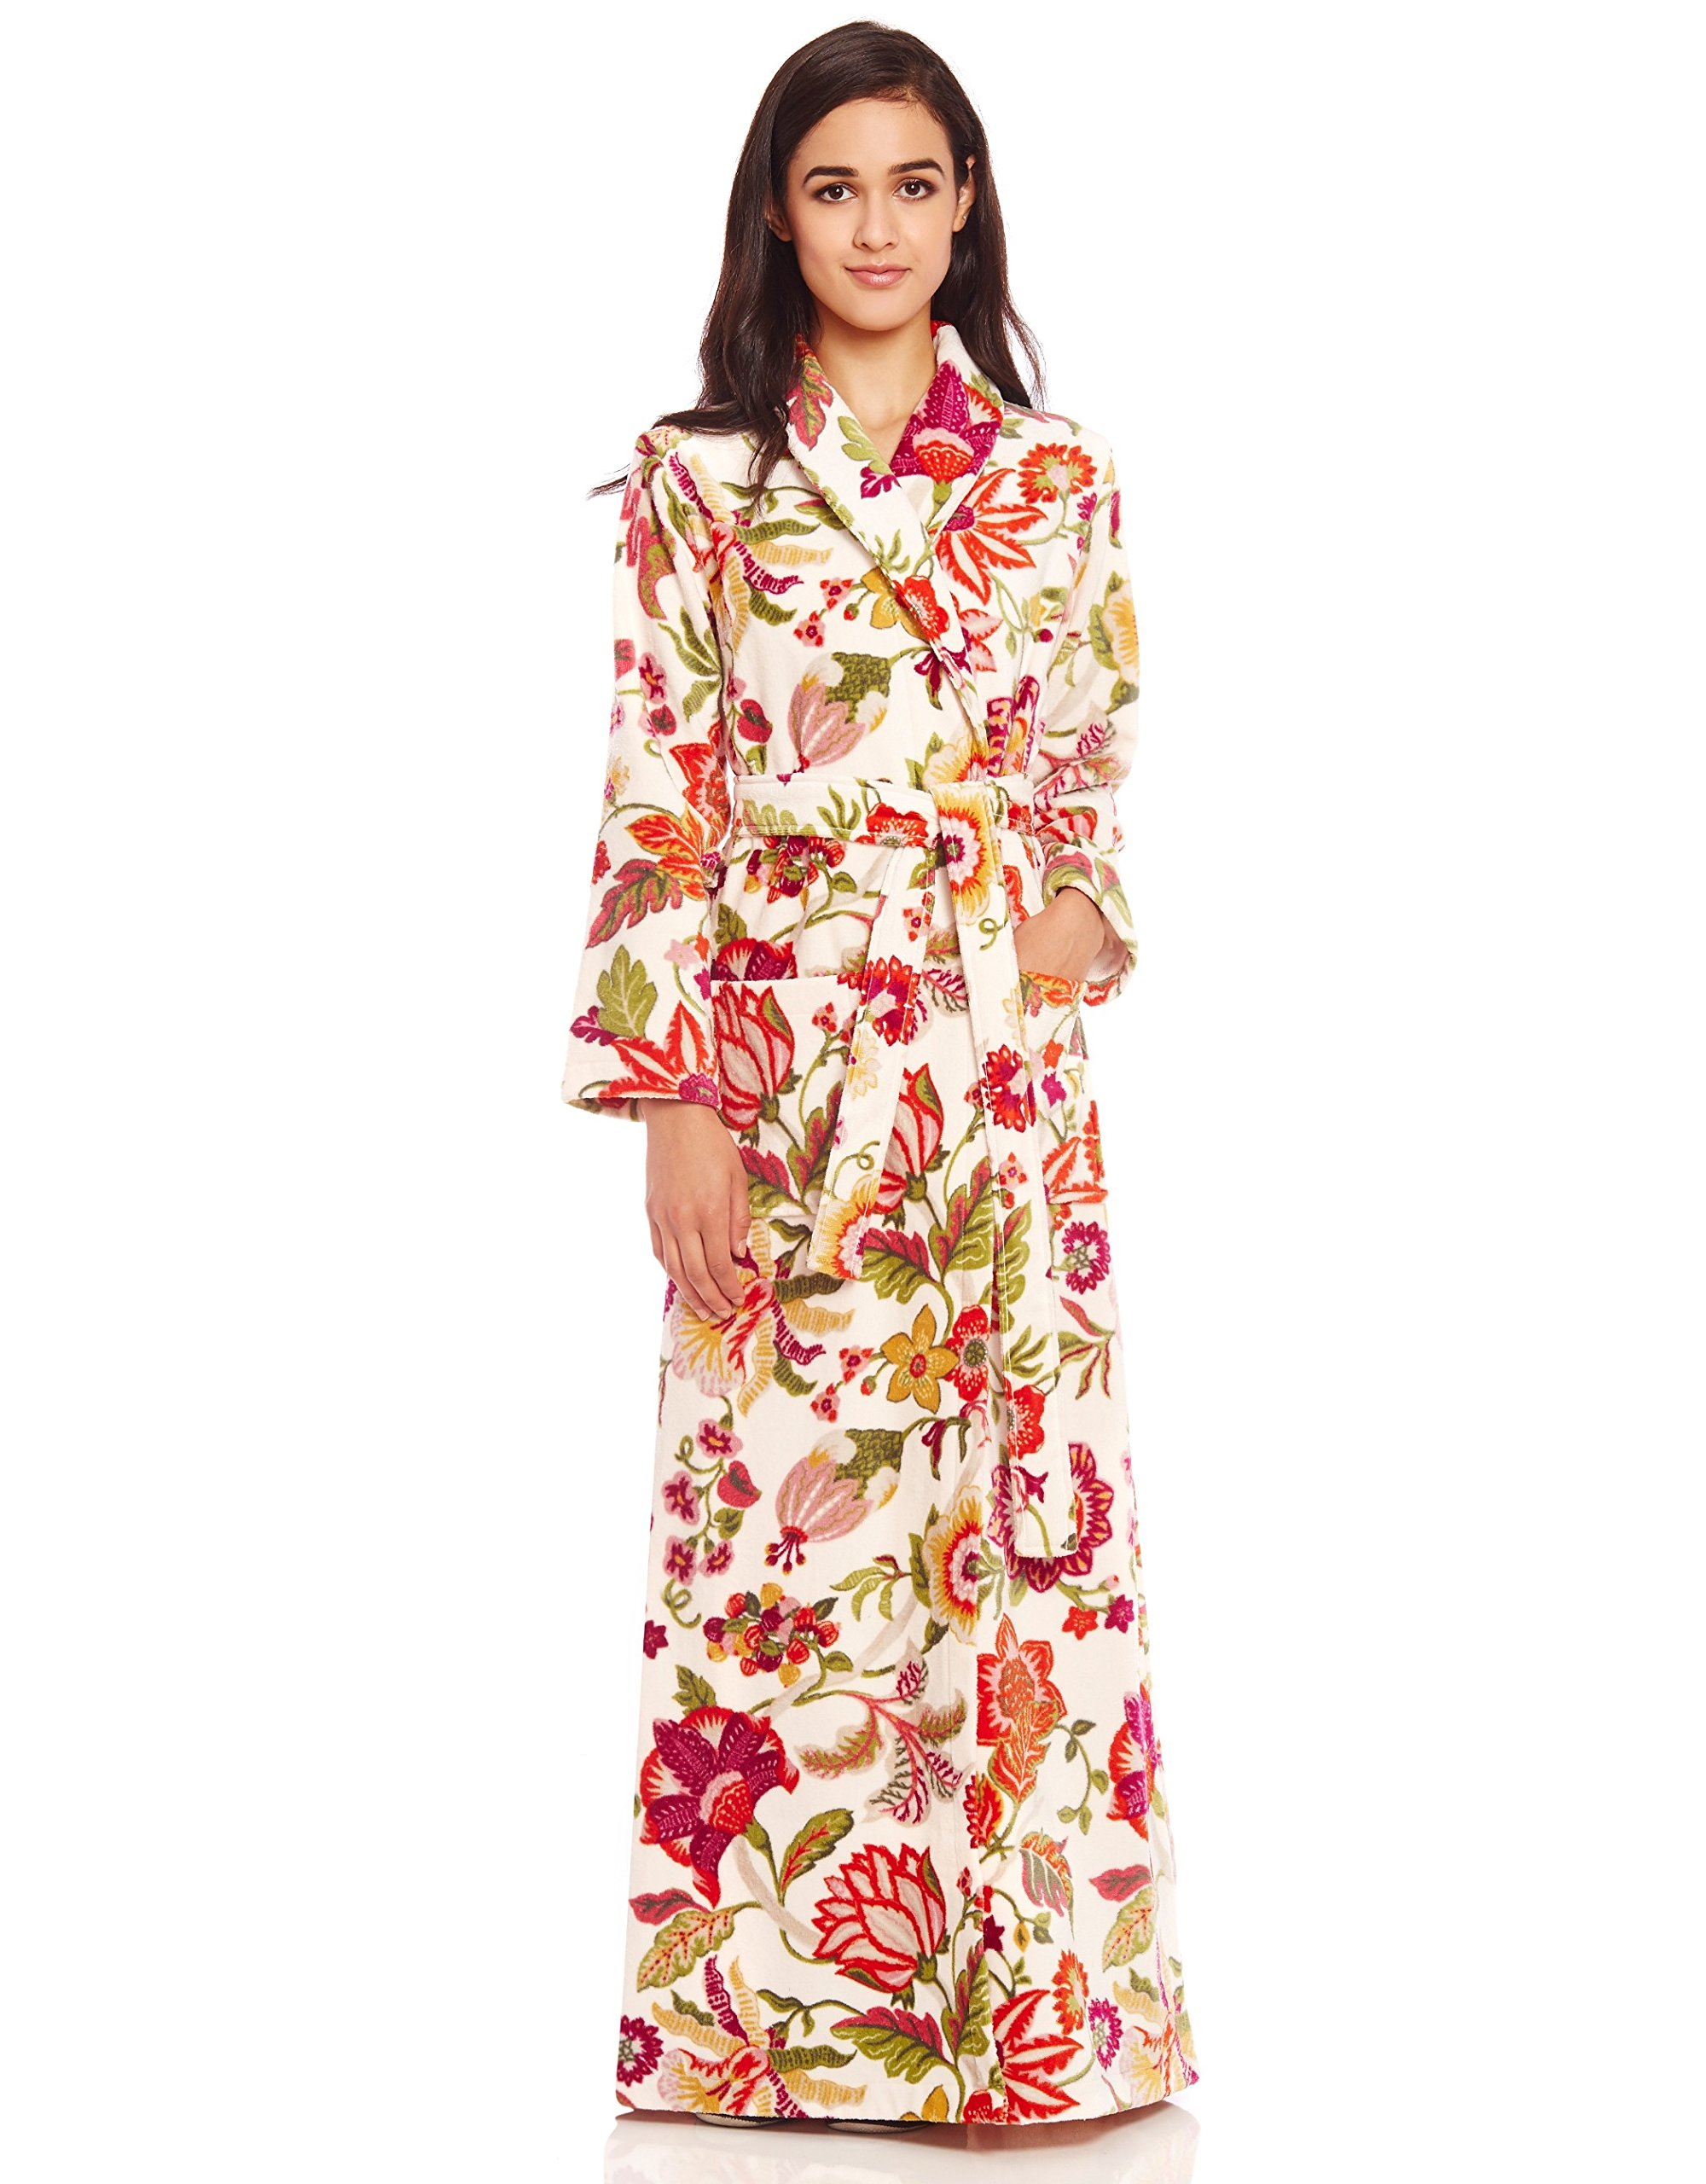 Cinderella Long Women's Terry Cotton Bath Robe - Toweling with Belt - Floral (XXL, Blossom Floral)